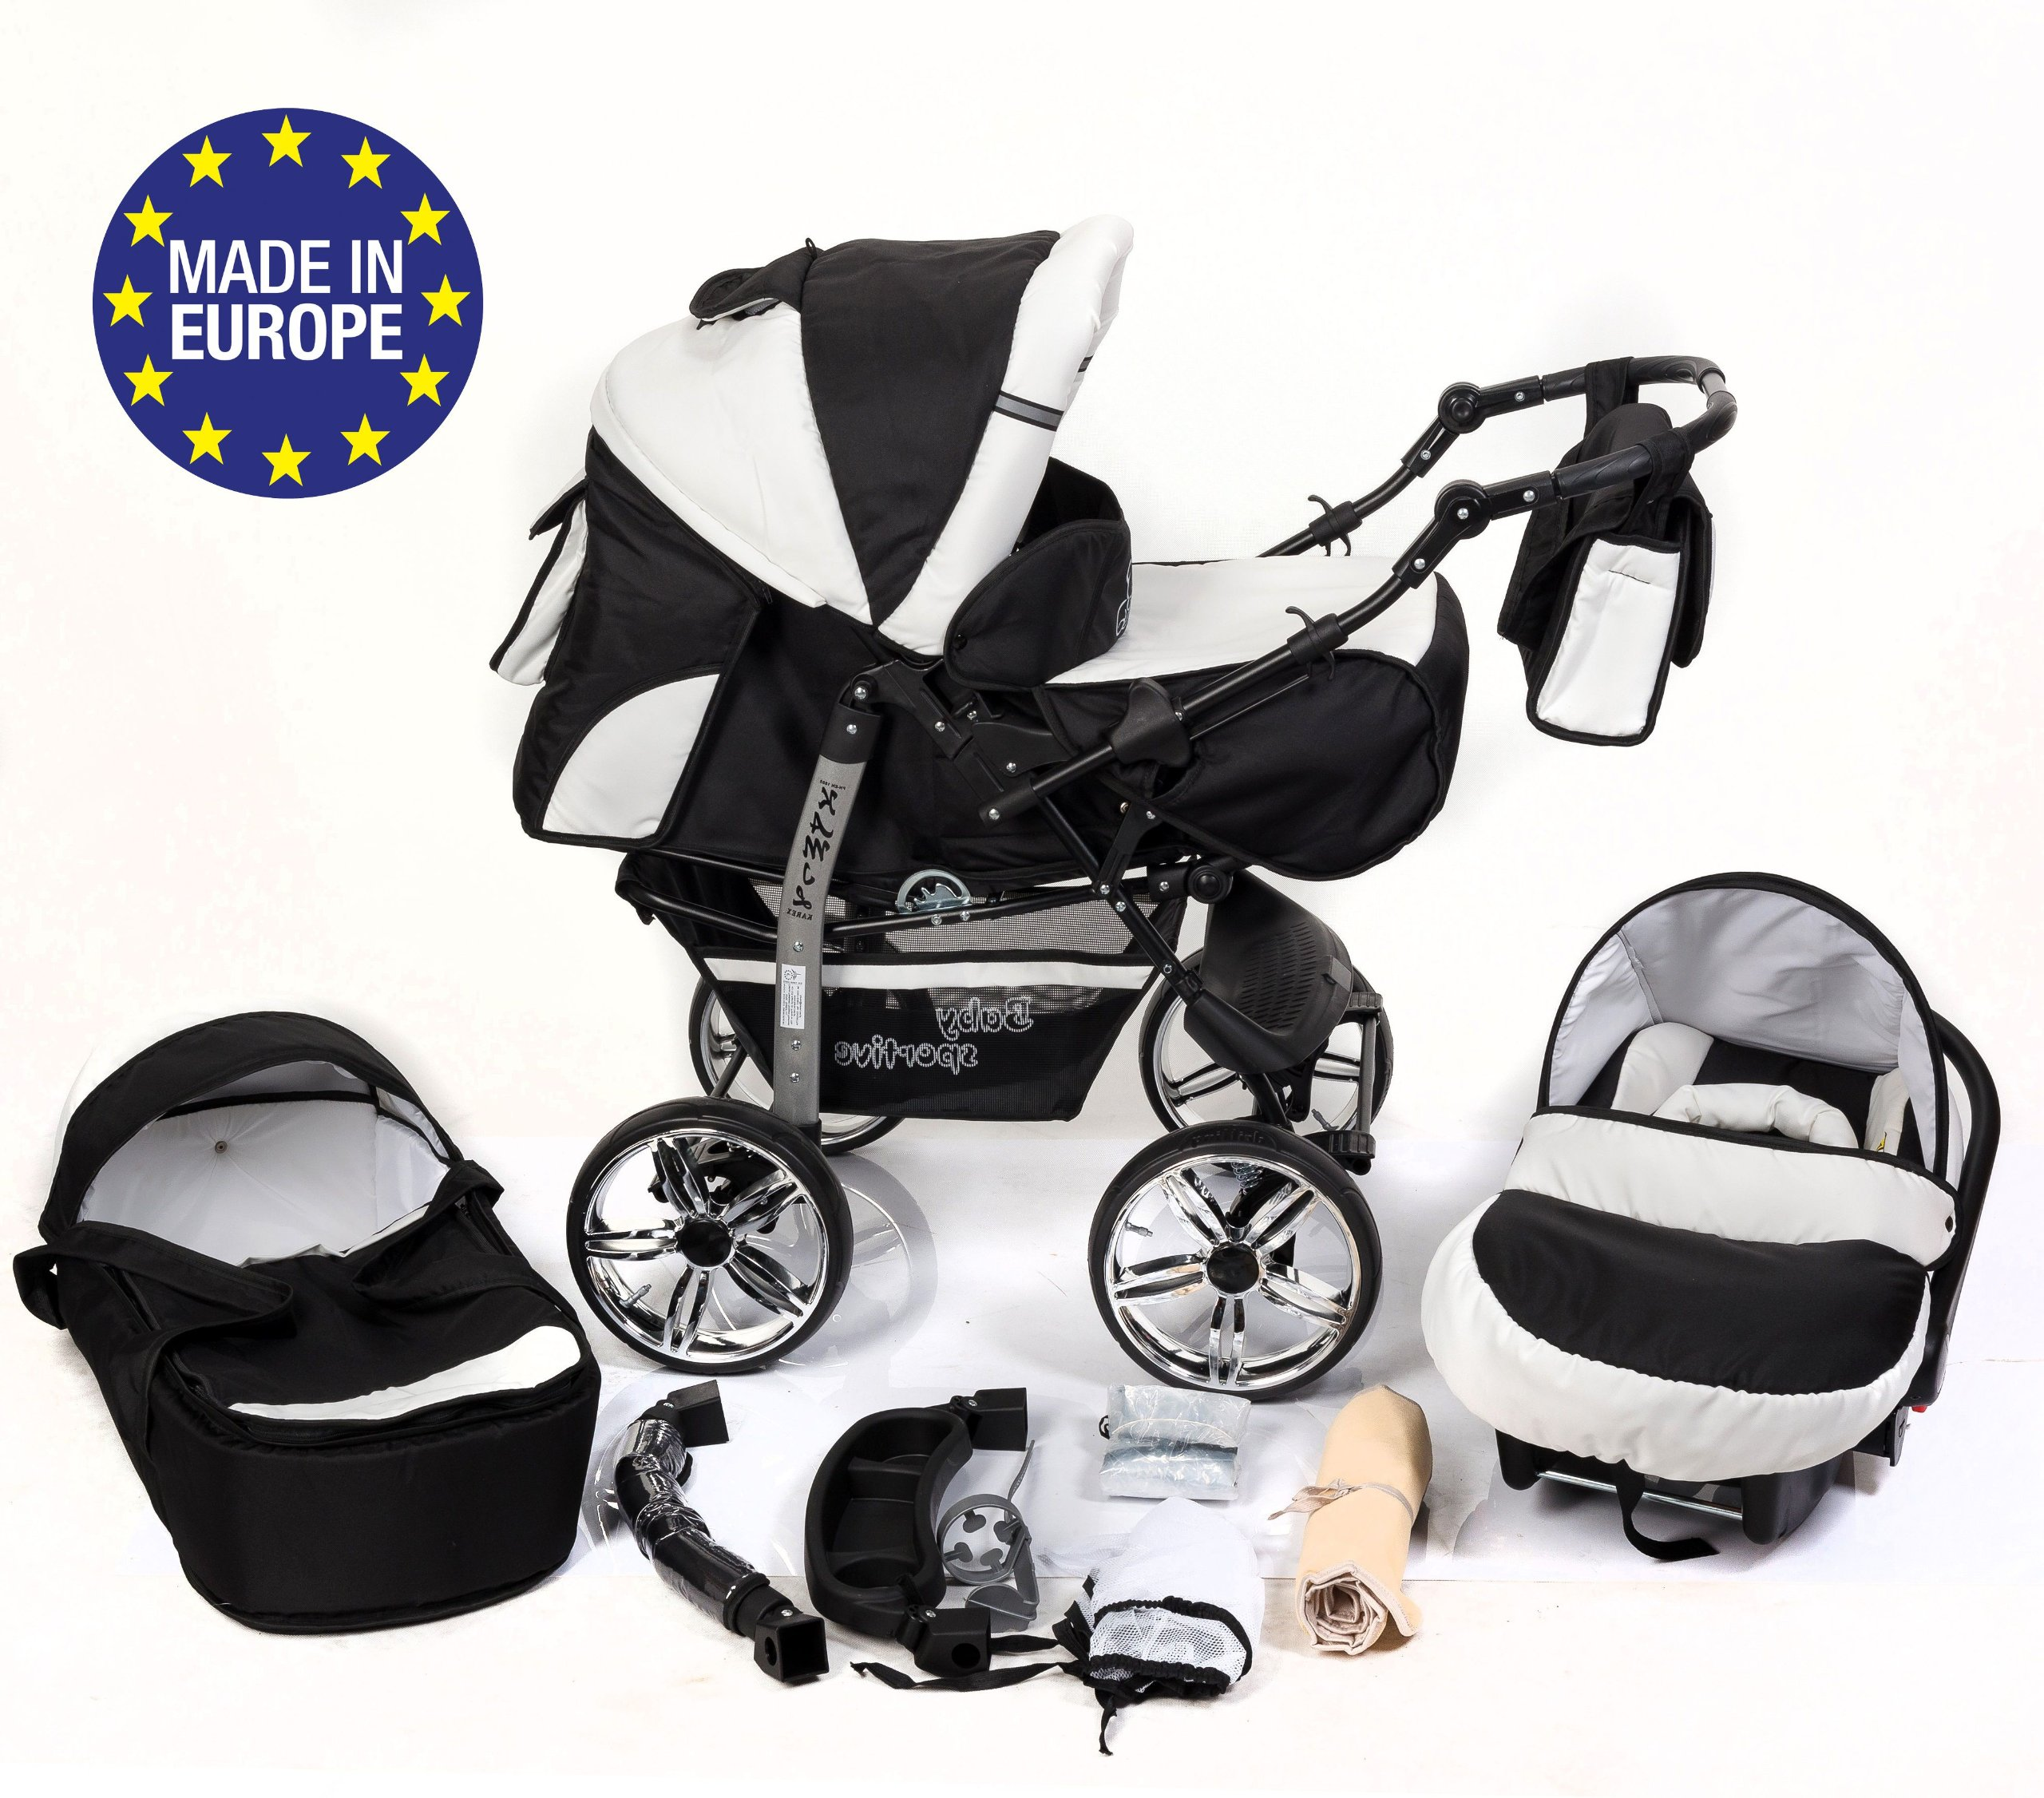 3-in-1 Travel System with Baby Pram, Car Seat, Pushchair & Accessories, Black & White   1